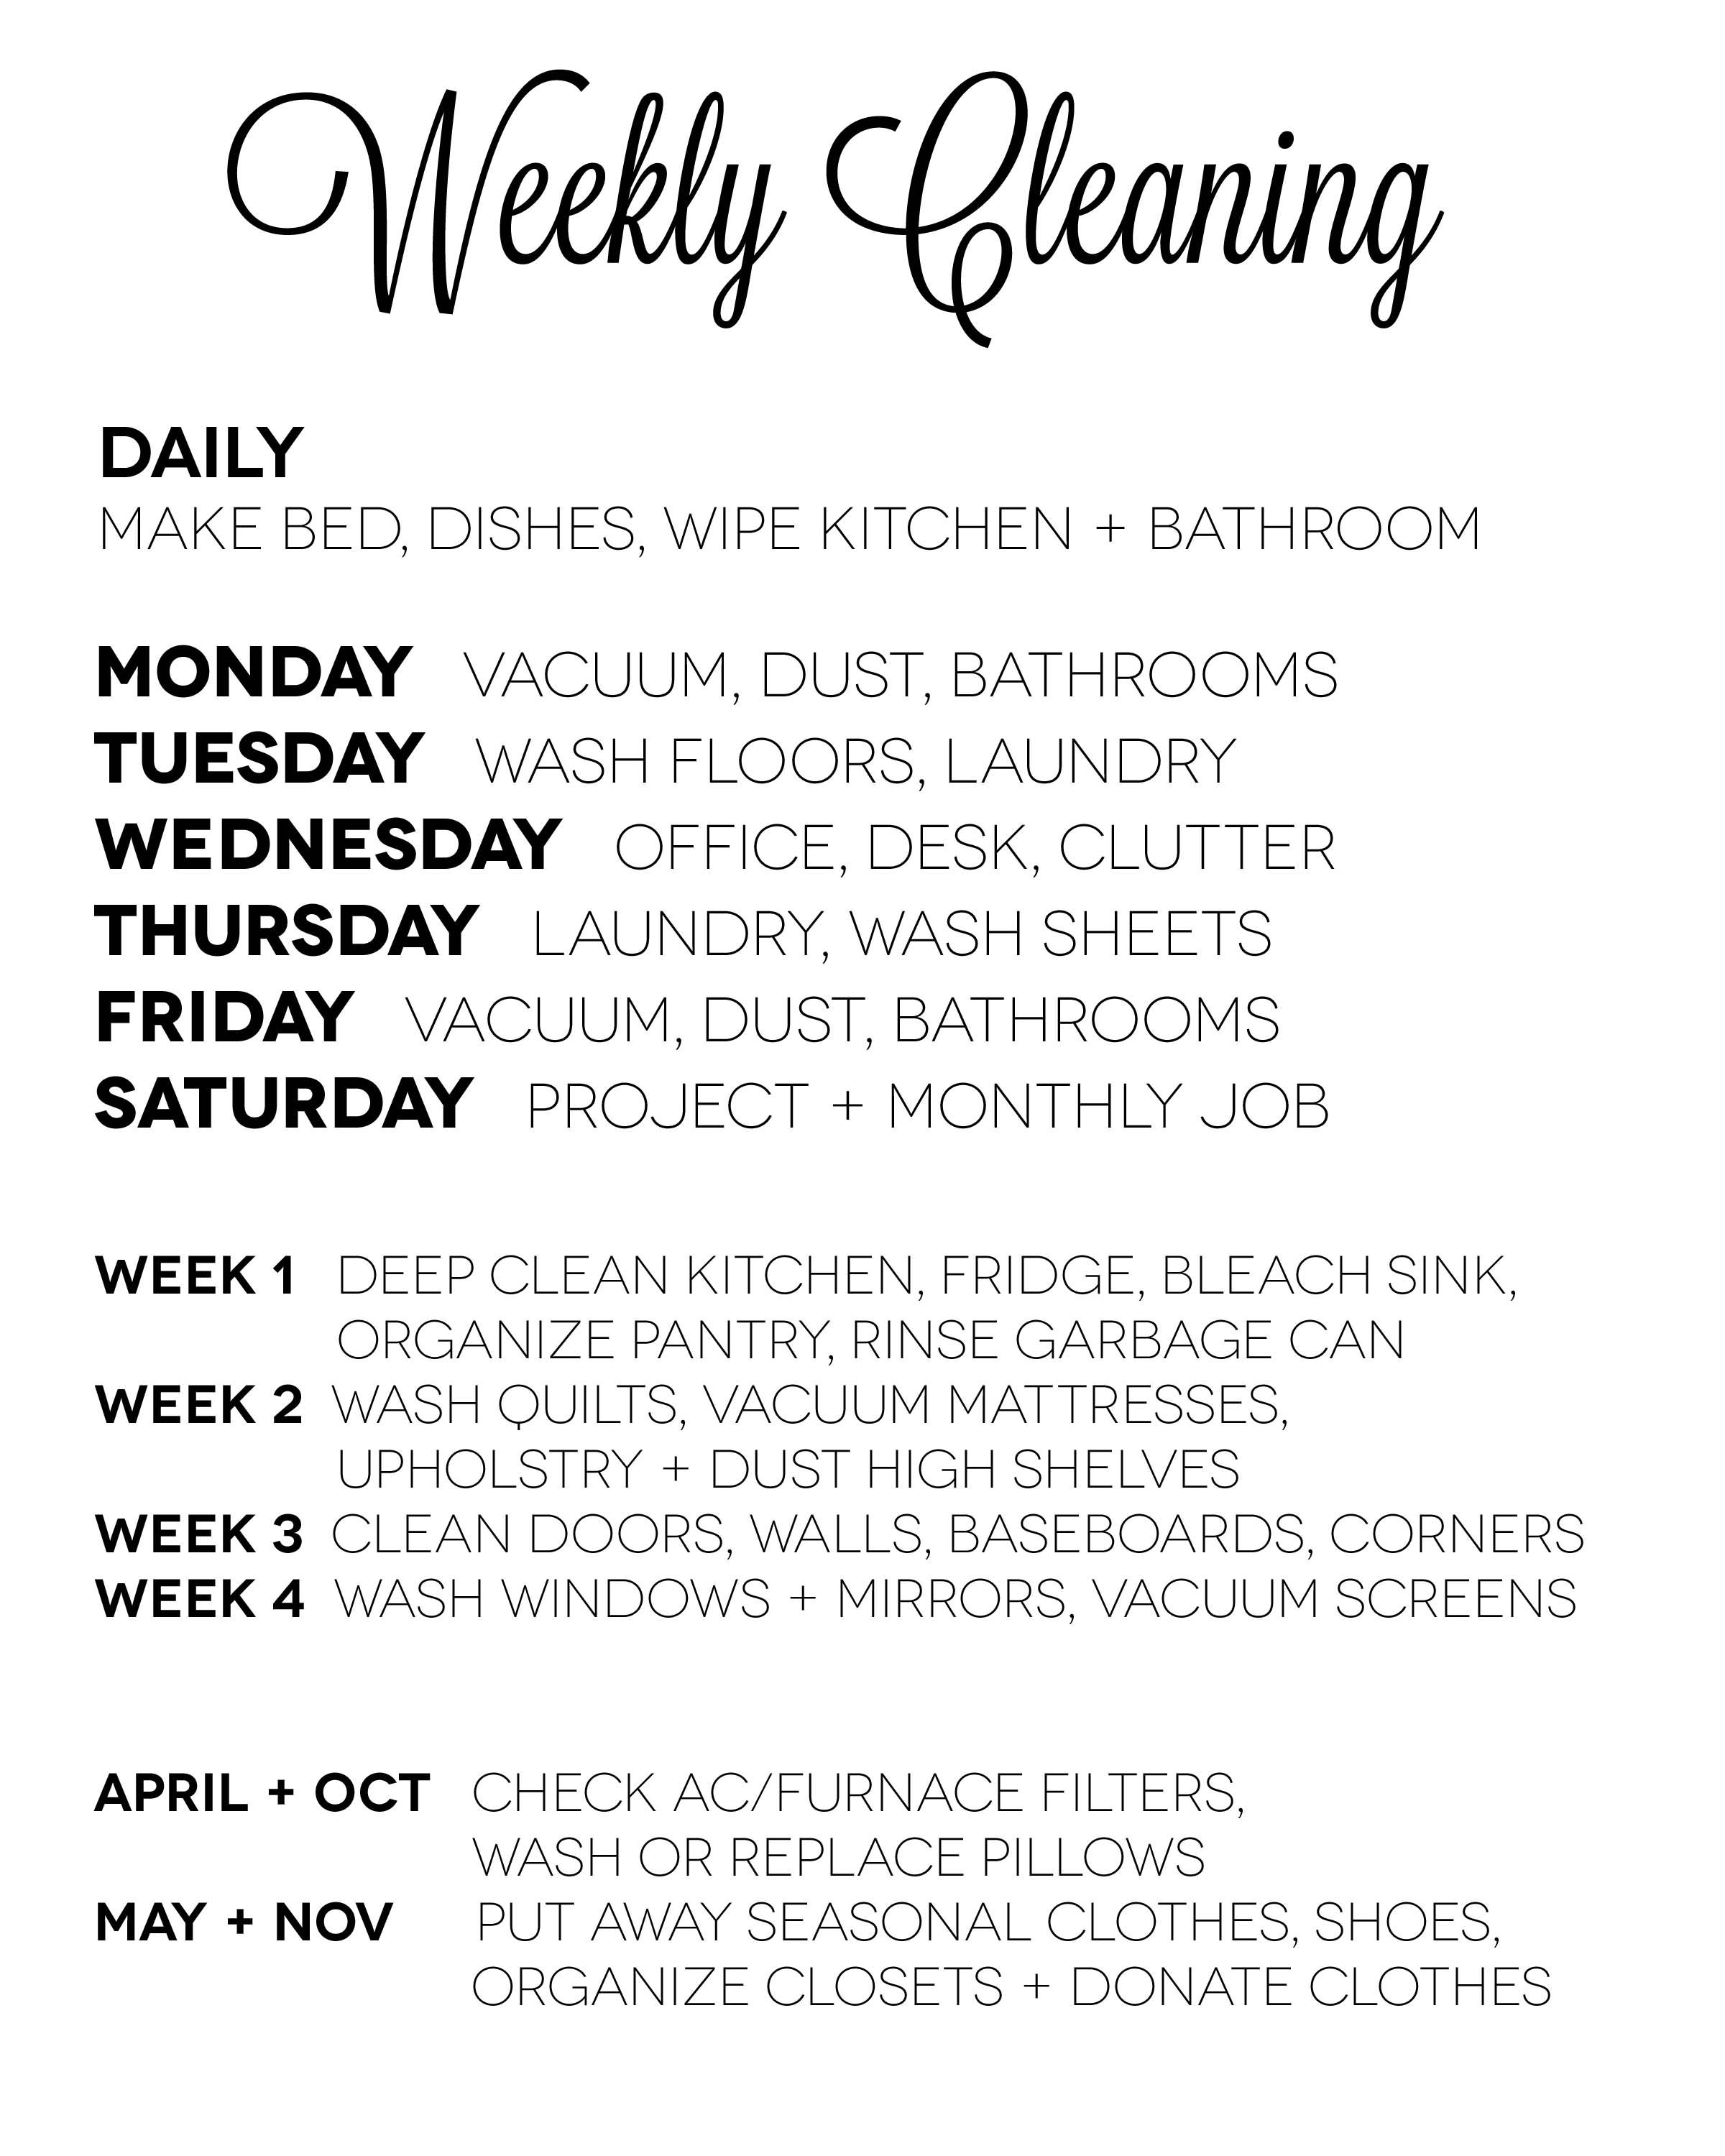 Weekly Cleaning Chart including spring/fall maintenance